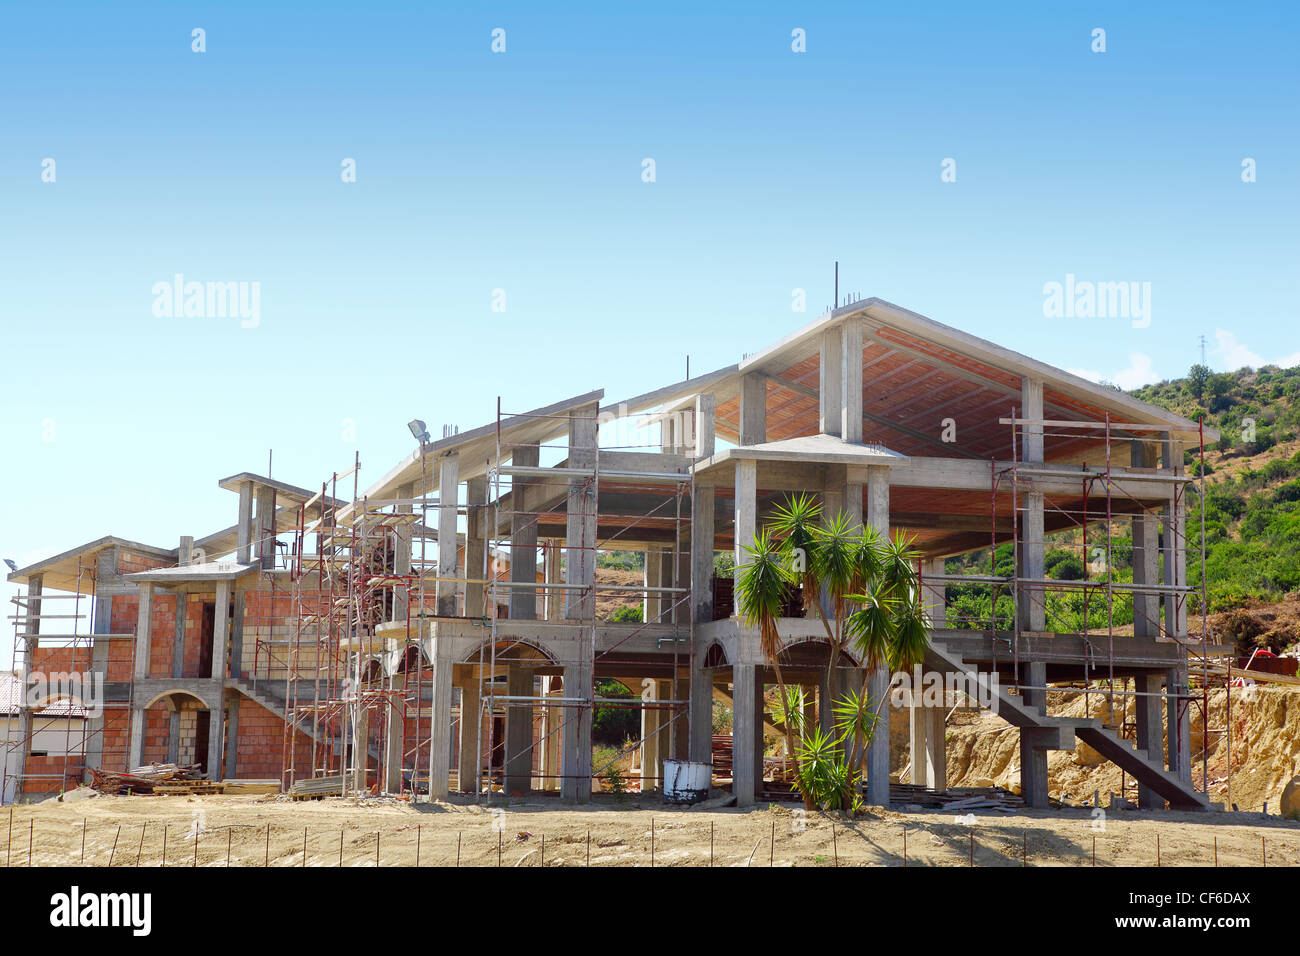 Sceleton of new suburb cottage house with front staircase and palm trees - Stock Image